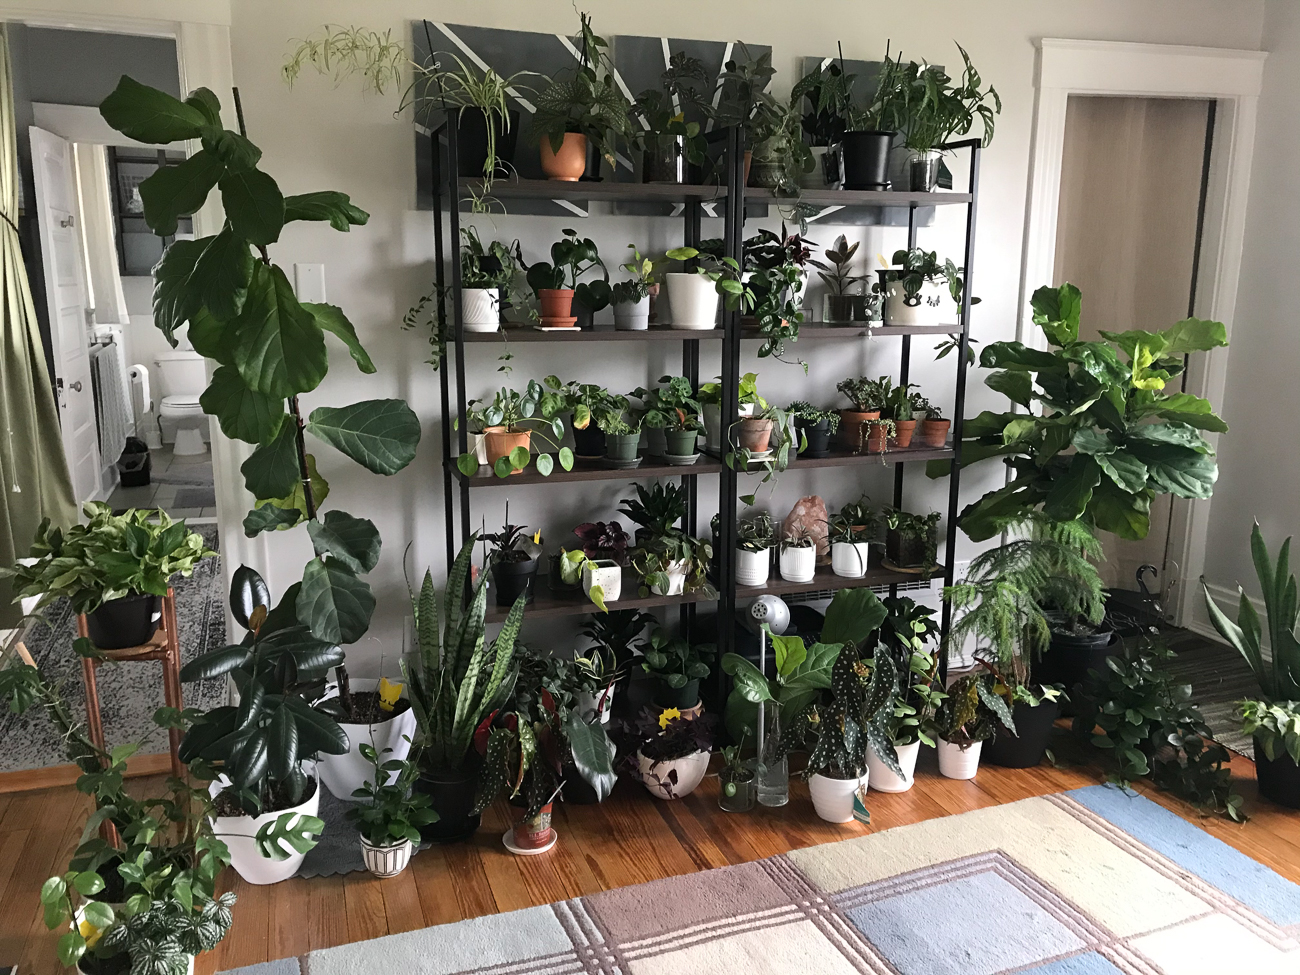 "Rebecca Bishop (IG: @ArtSky.Designs & @ReebsBishop) from Norwood / ""My grandmother had a green thumb and inspired a love of plants early on (both indoors and outdoors!). My room with the most plants is somewhat COVID-inspired! My workplace was quick to switch to working from home and I wanted to make my new workspace as uplifting as possible. I ended up taking over a bedroom in our home on our second floor that has great east-facing windows. To better enjoy the space and still be able to move around it, I thought these shelves from Target would do a great job helping keep plants off the floor and hide my printer at the same time! My printer doesn't 'give me joy,' but the plants do. I also had most of these plants before the pandemic but have picked up a few since (like a variegated lemon tree, some pink arrowhead vine, and a hoya obovata). These shelves act as my zoom call background for all work calls and happy hours! I swear, seeing this wall and hearing me talk about plants has inspired at least three friends, two coworkers, and my mom to start their own indoor plant collections. I firmly believe caring for plants is a fantastic form of self care. Caring for my collection brings me so much joy and forces me to slow down and focus. When it comes to favorites, I love anything 'string' (hearts, pearls, tears, etc), hoyas, and begonias. My 'pride and joys' are a massive Hoya Austrails, a small variegated string of pearls, and my small collection of Begonia Maculatas."" / Image courtesy of Rebecca Bishop // Published: 6.13.20"